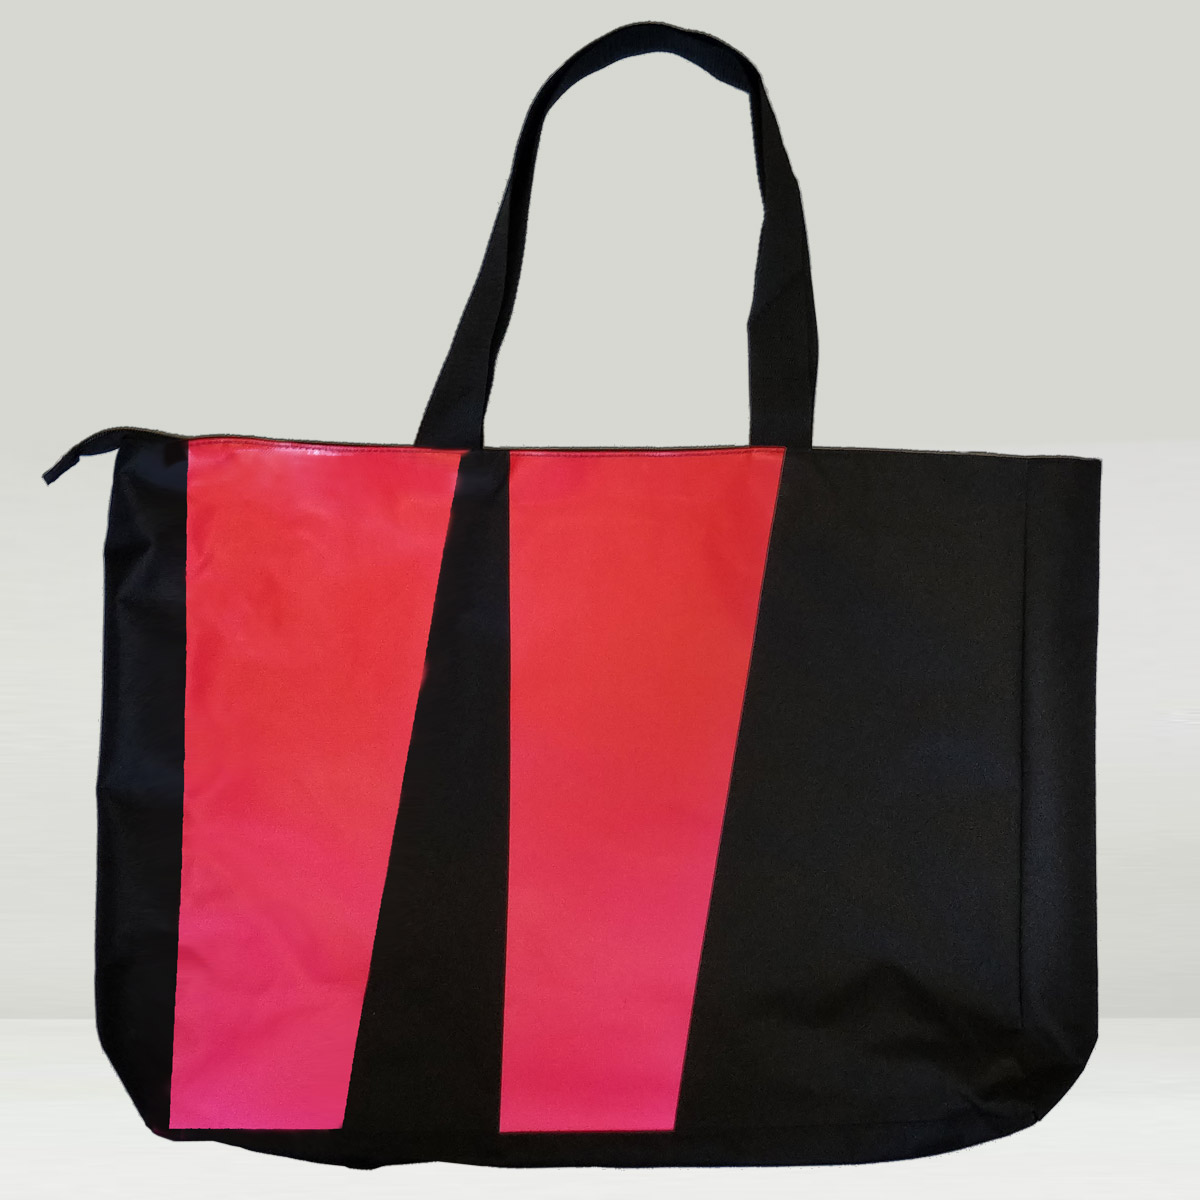 Product-Image-tote-bag